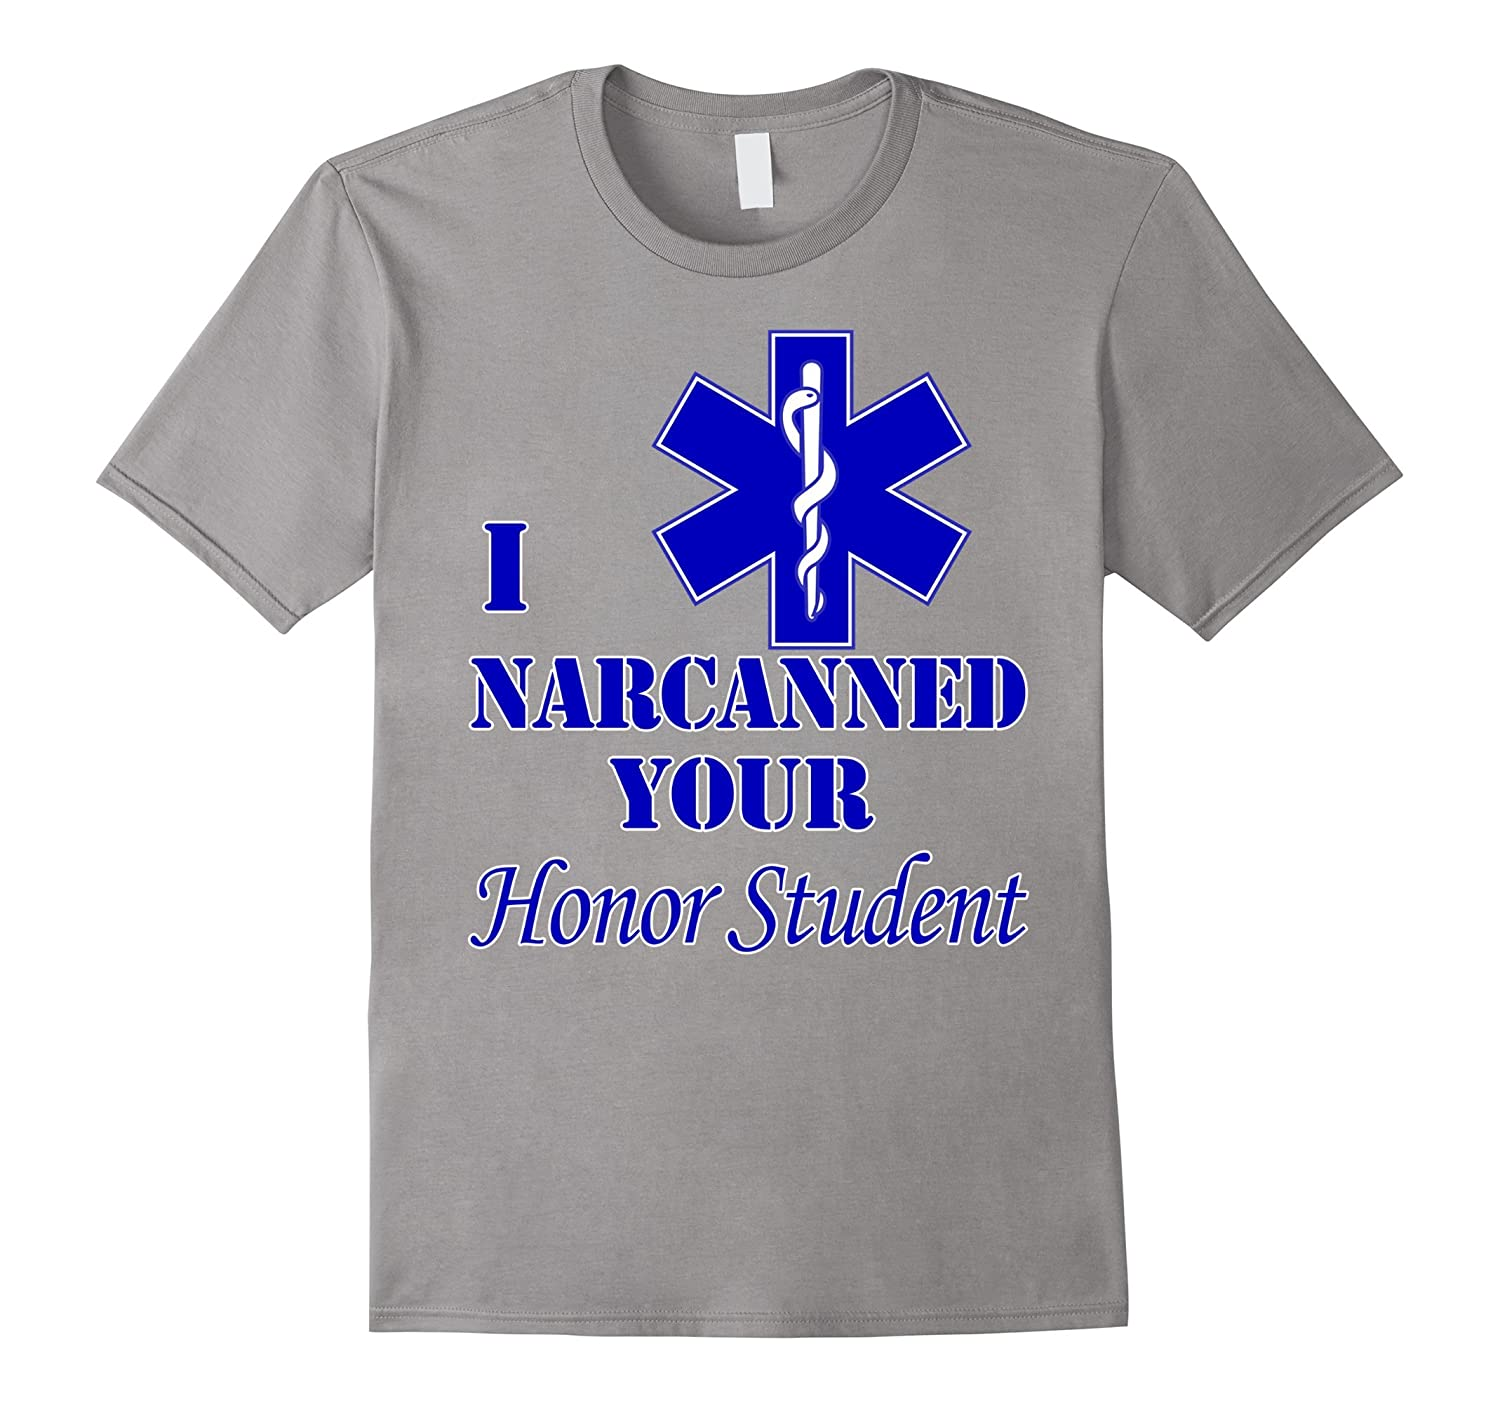 636e6a2d I Narcanned Your Honor Student EMT First Responder T-Shirt-RT ...